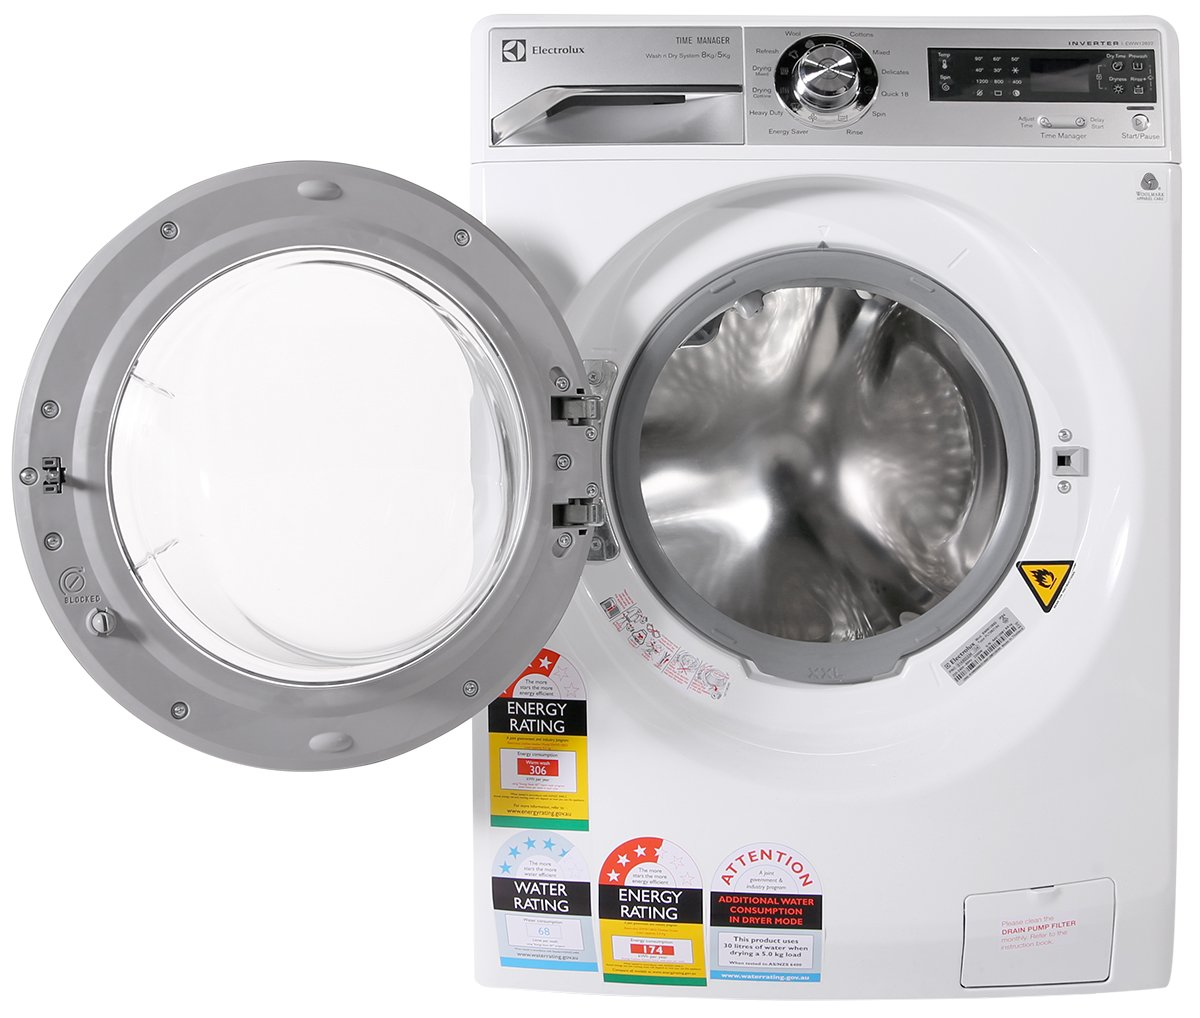 Electrolux washer and dryer credit energy star Electrolux washer and dryer